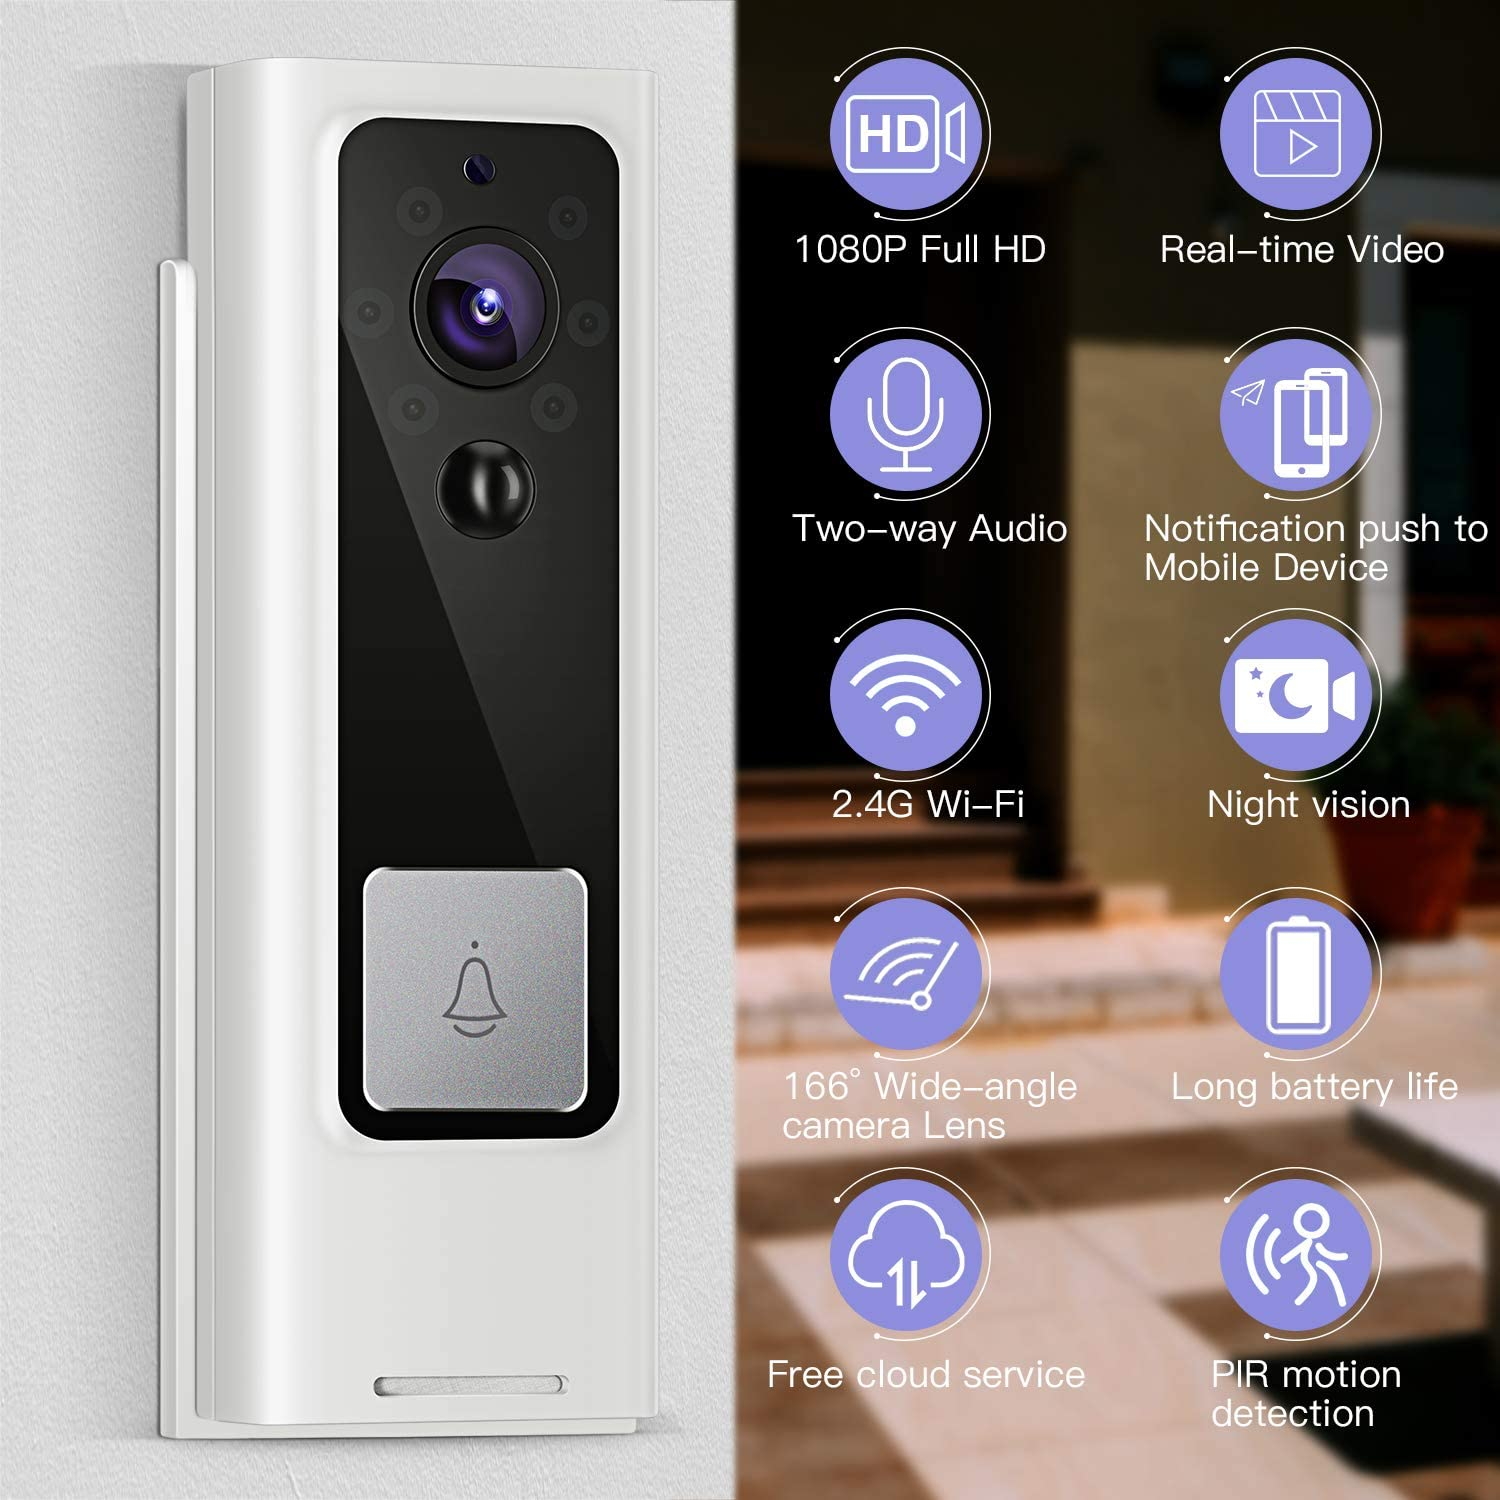 Night Vision 1080P HD WIFI Security Camera with Real-time Video PIR Motion Detection for iOS /& Android system Free Cloud Storage and Batteries Included Two-Way Talk Wireless Video Doorbell Camera